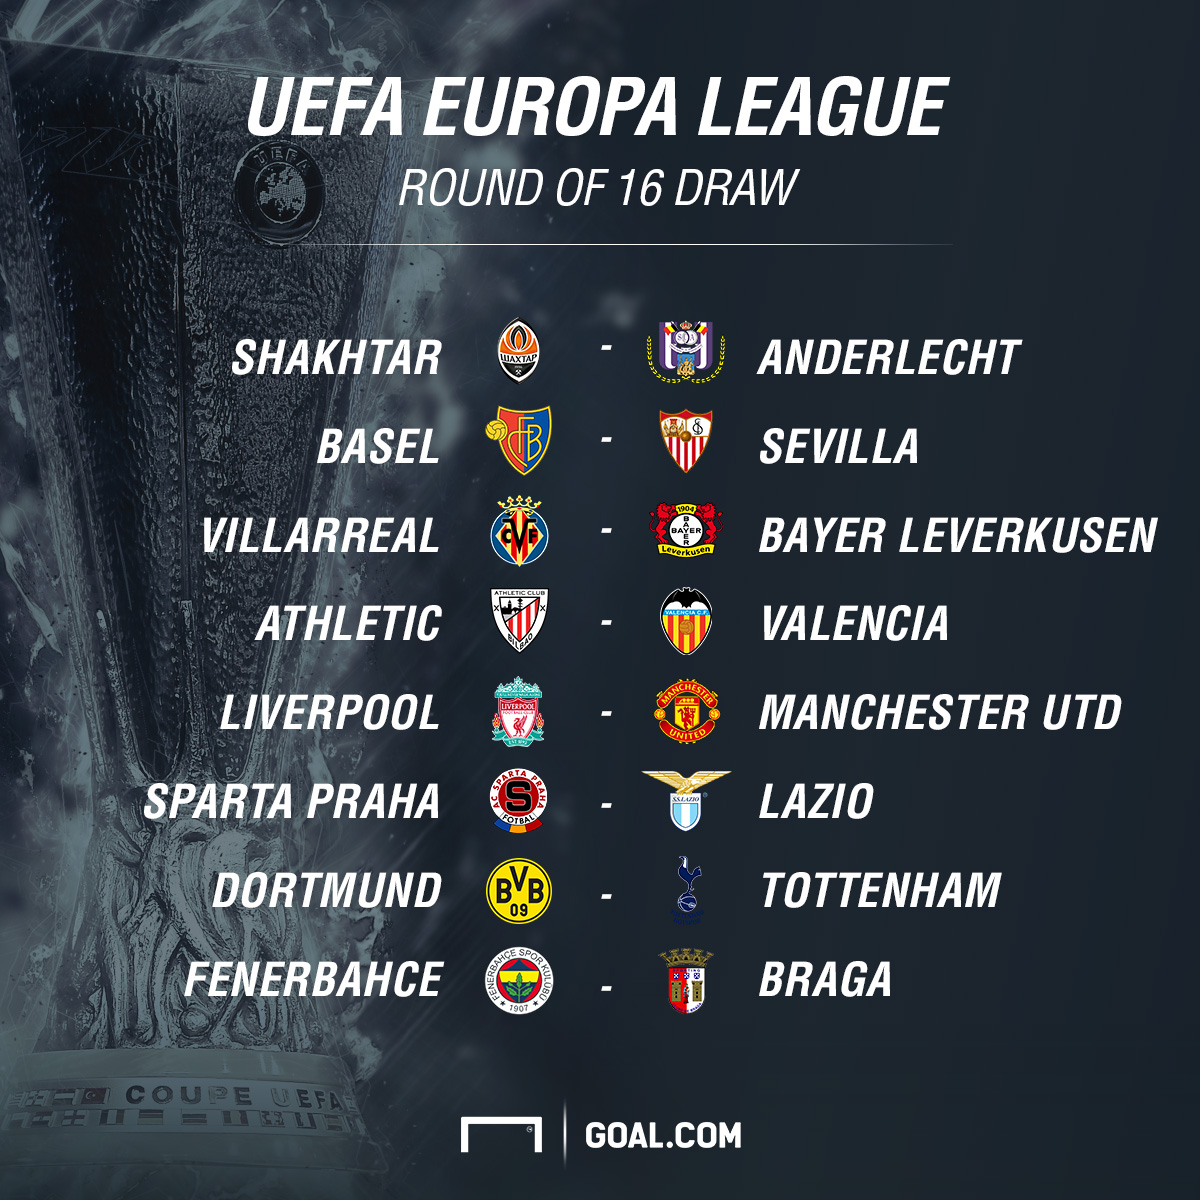 europa league draw - photo #6